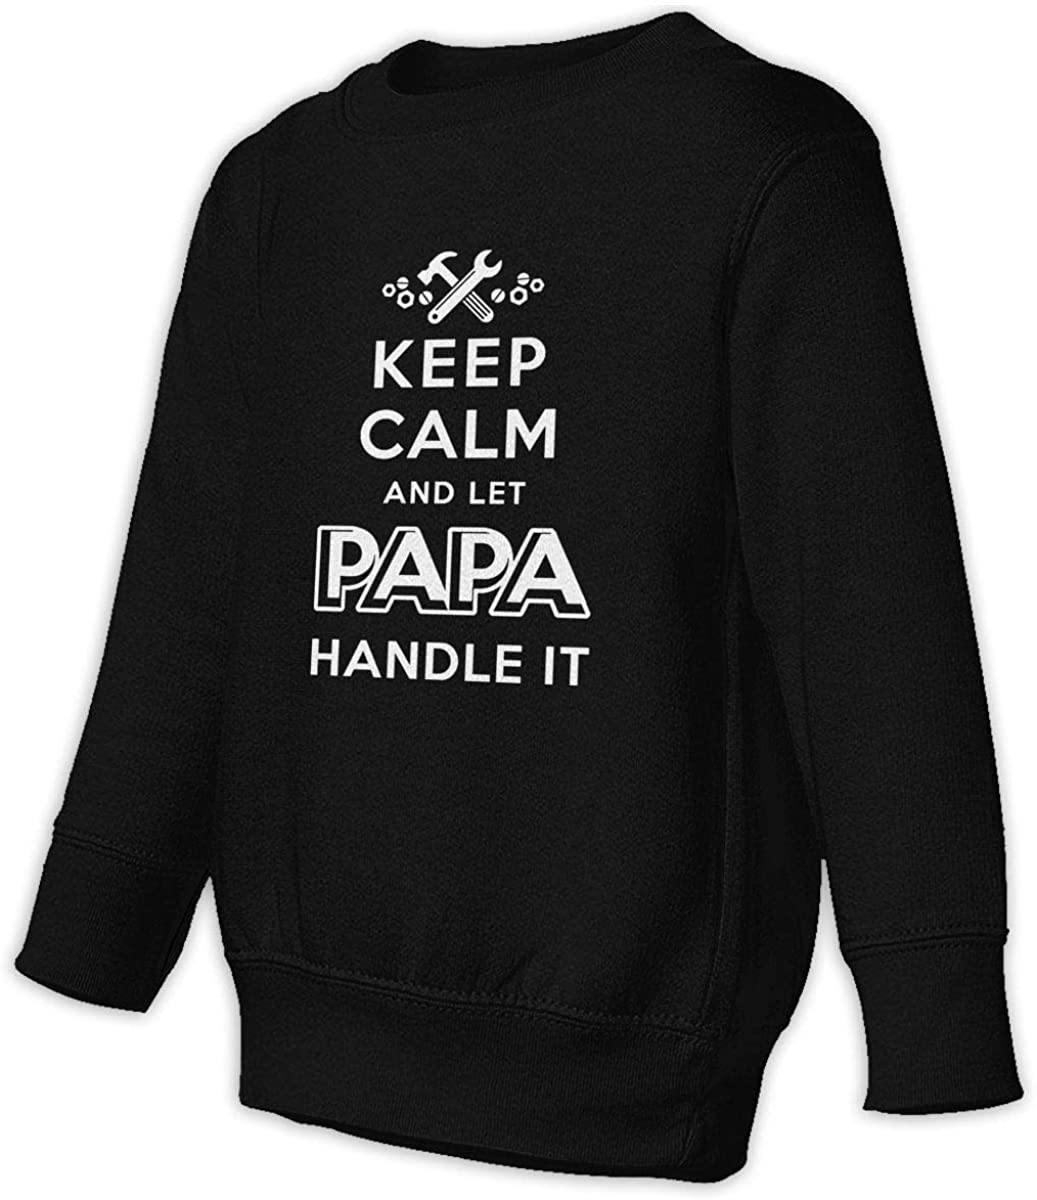 Keep Calm Papa Handle It Boys Girls Pullover Sweaters Crewneck Sweatshirts Clothes for 2-6 Years Old Children